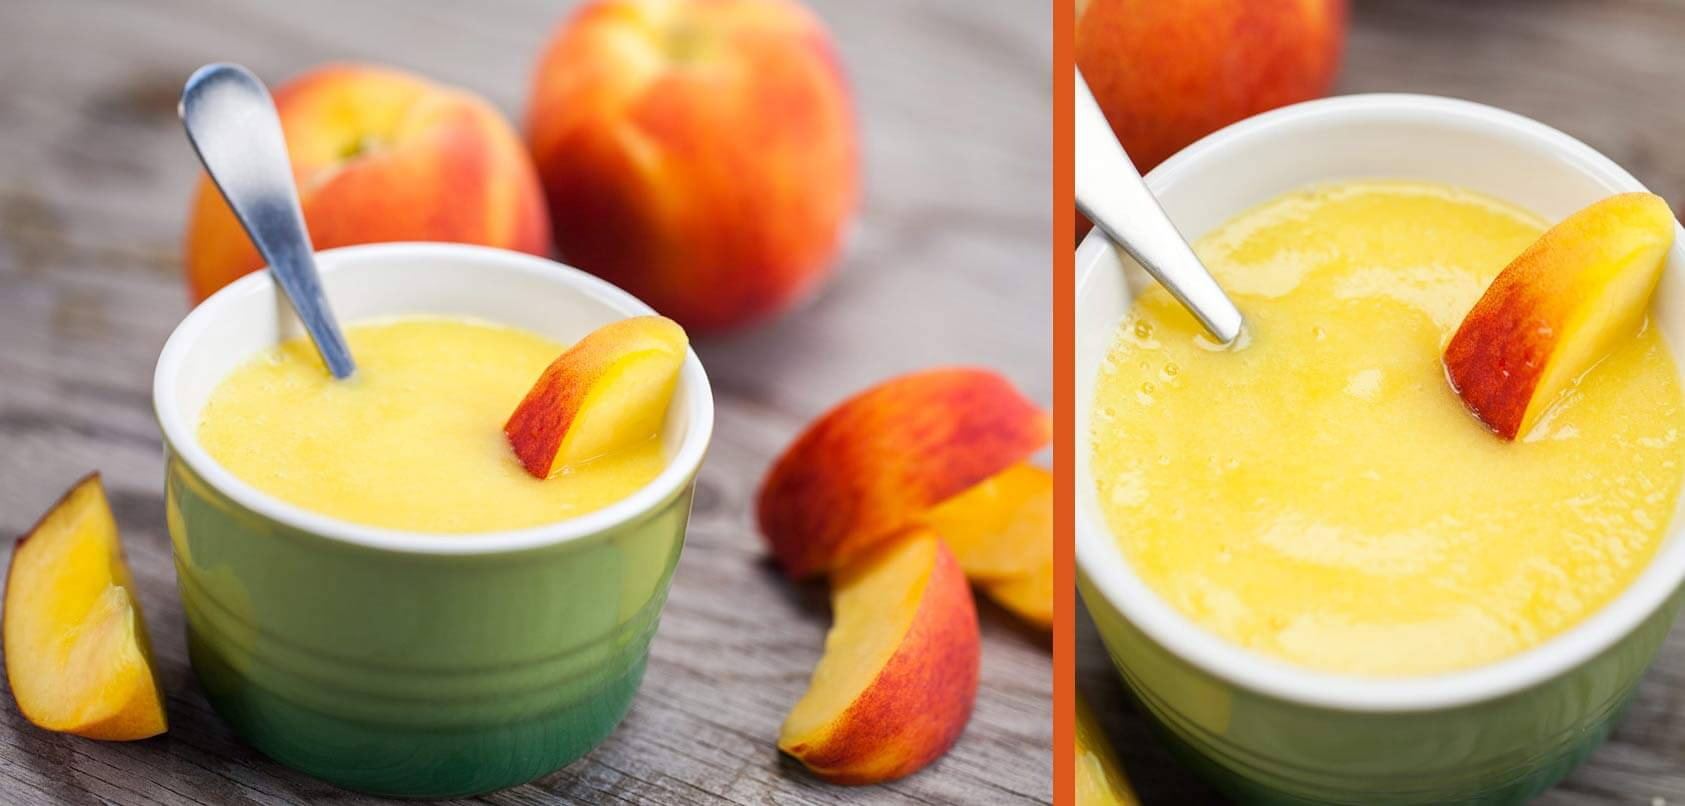 How To Deal With Baby Food Allergies